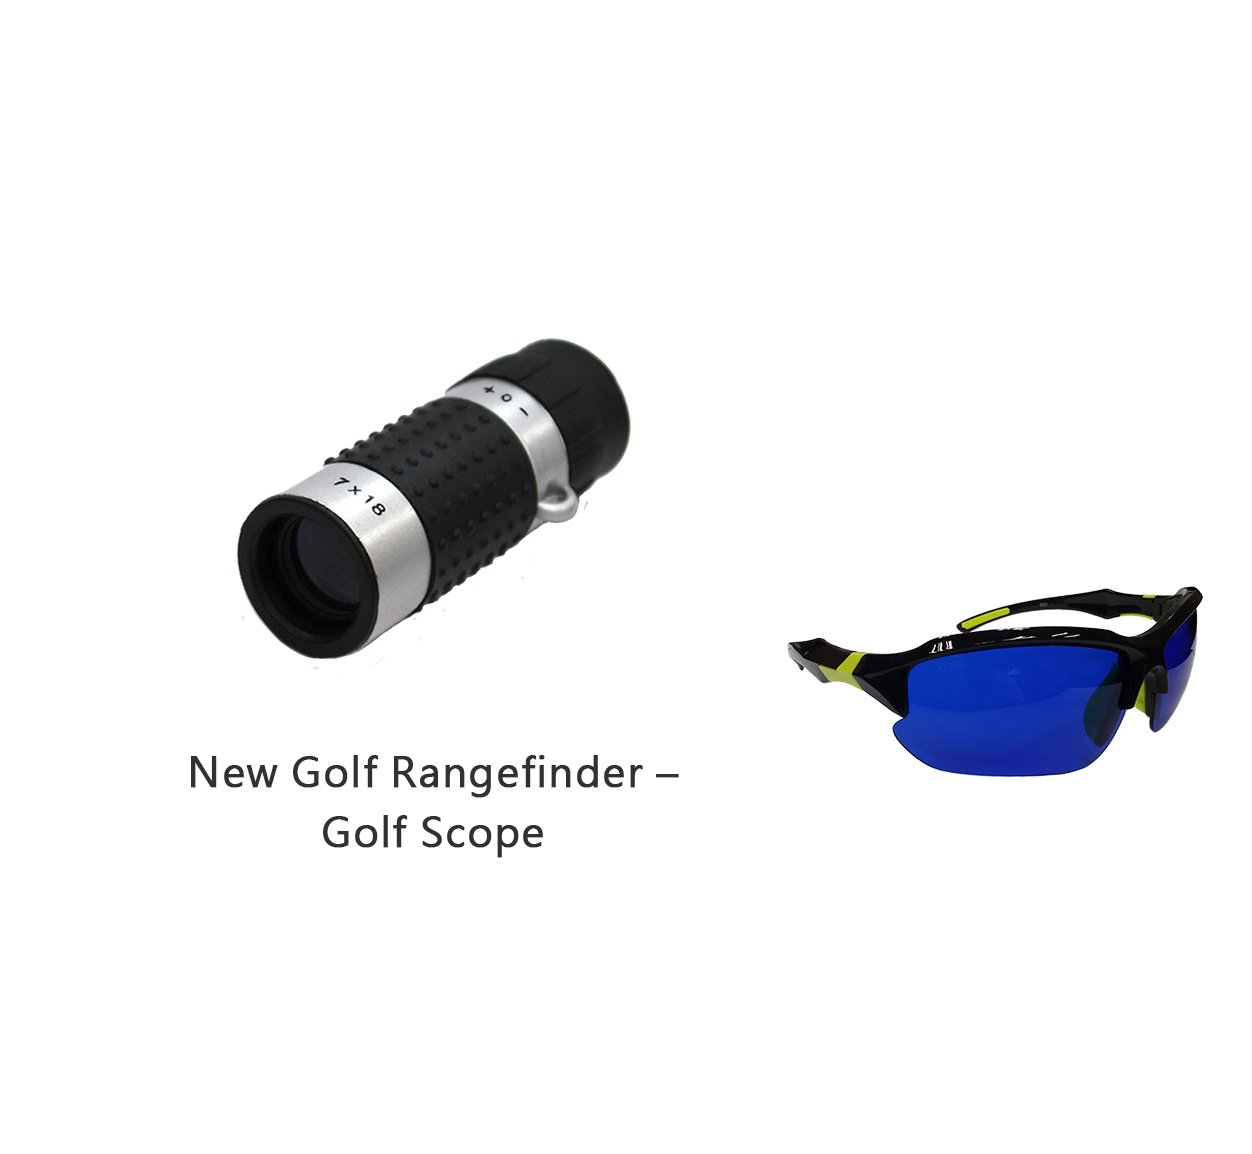 Posma GF100D Bundle set Golf Rangefinder High Definition Mini Monocular Pocket Scope + Golf Ball Finder Hunter Retriever Glasses